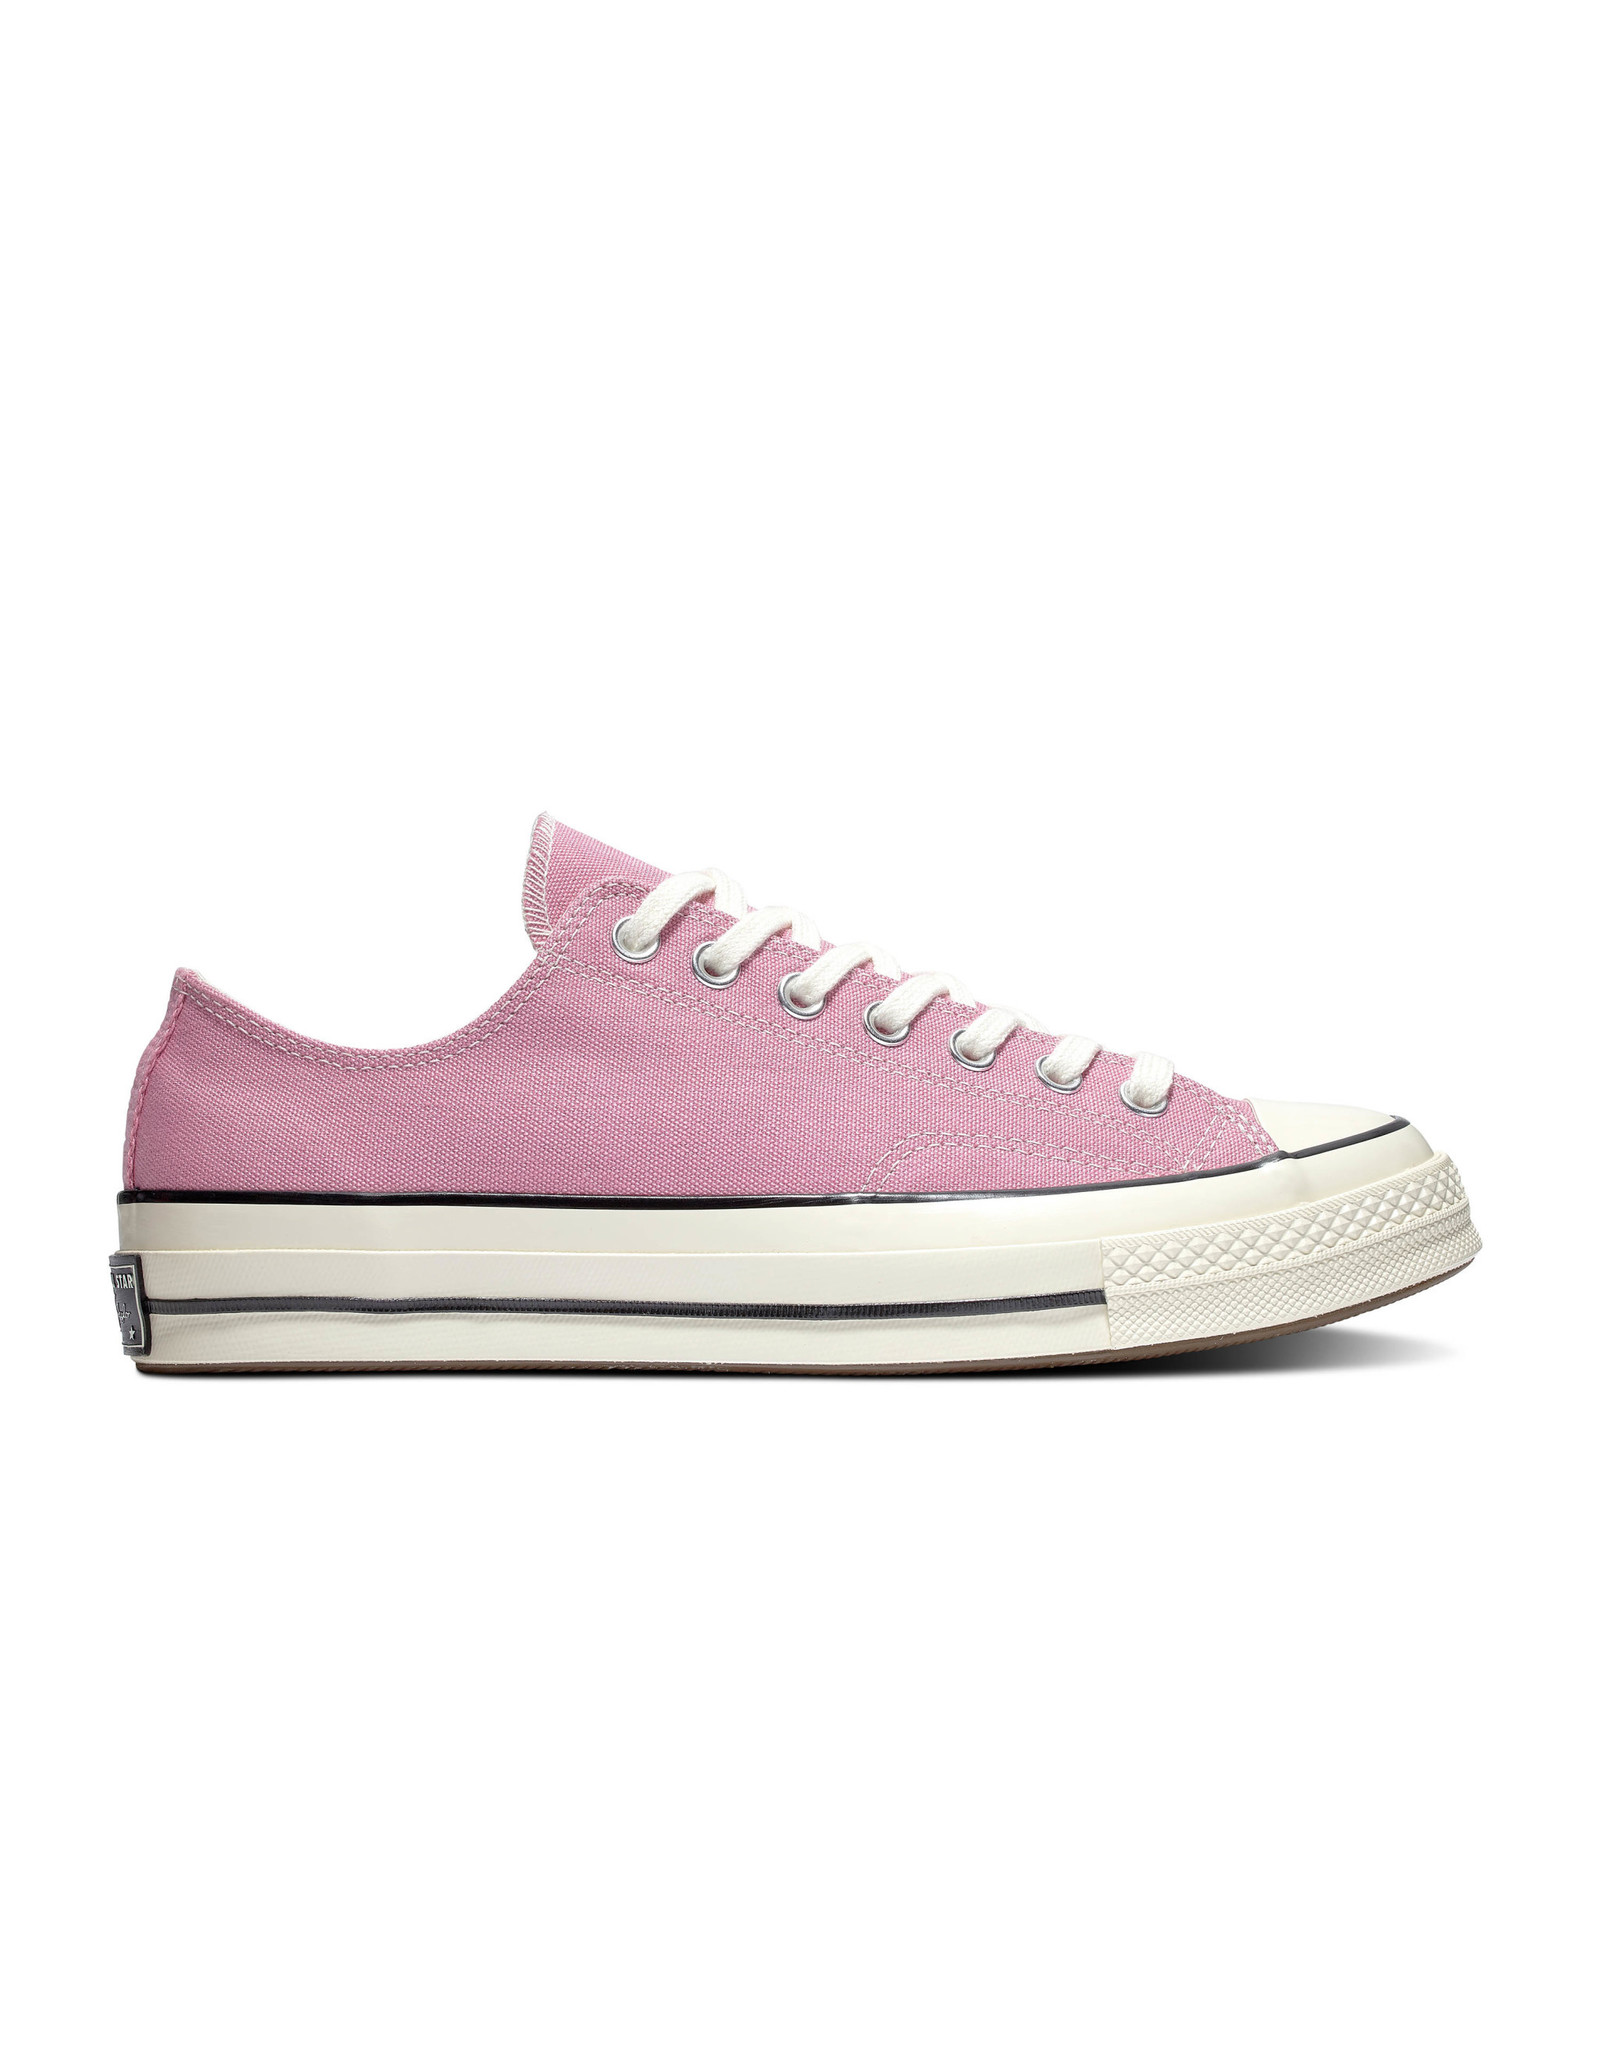 CONVERSE CHUCK 70 OX MAGIC FLAMINGO/EGRET/BLACK C970FAJ-164952C